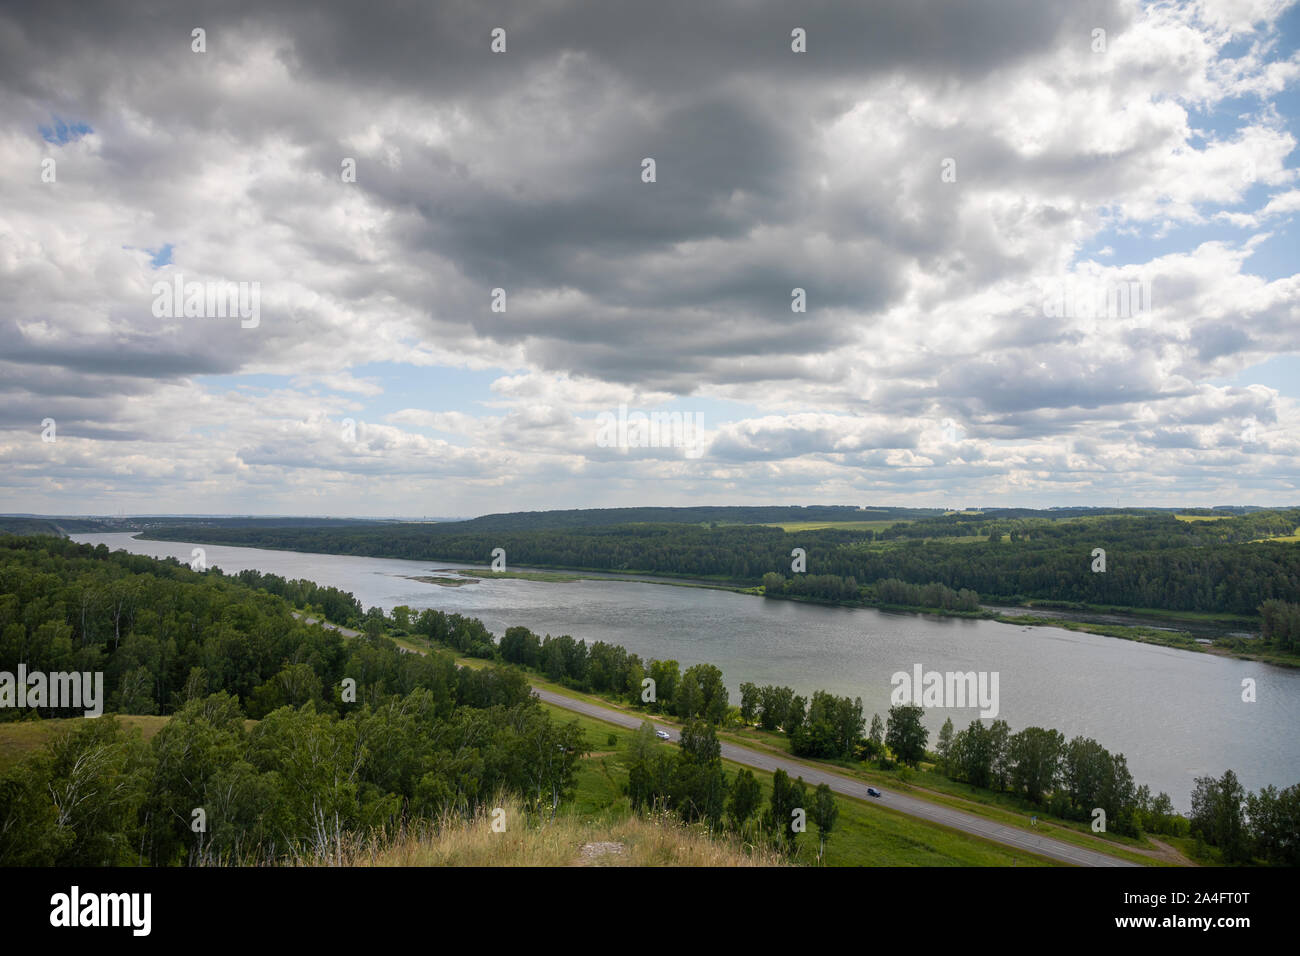 Summer river landscape, view of the river Tom from a height, Siberia, Russia Stock Photo